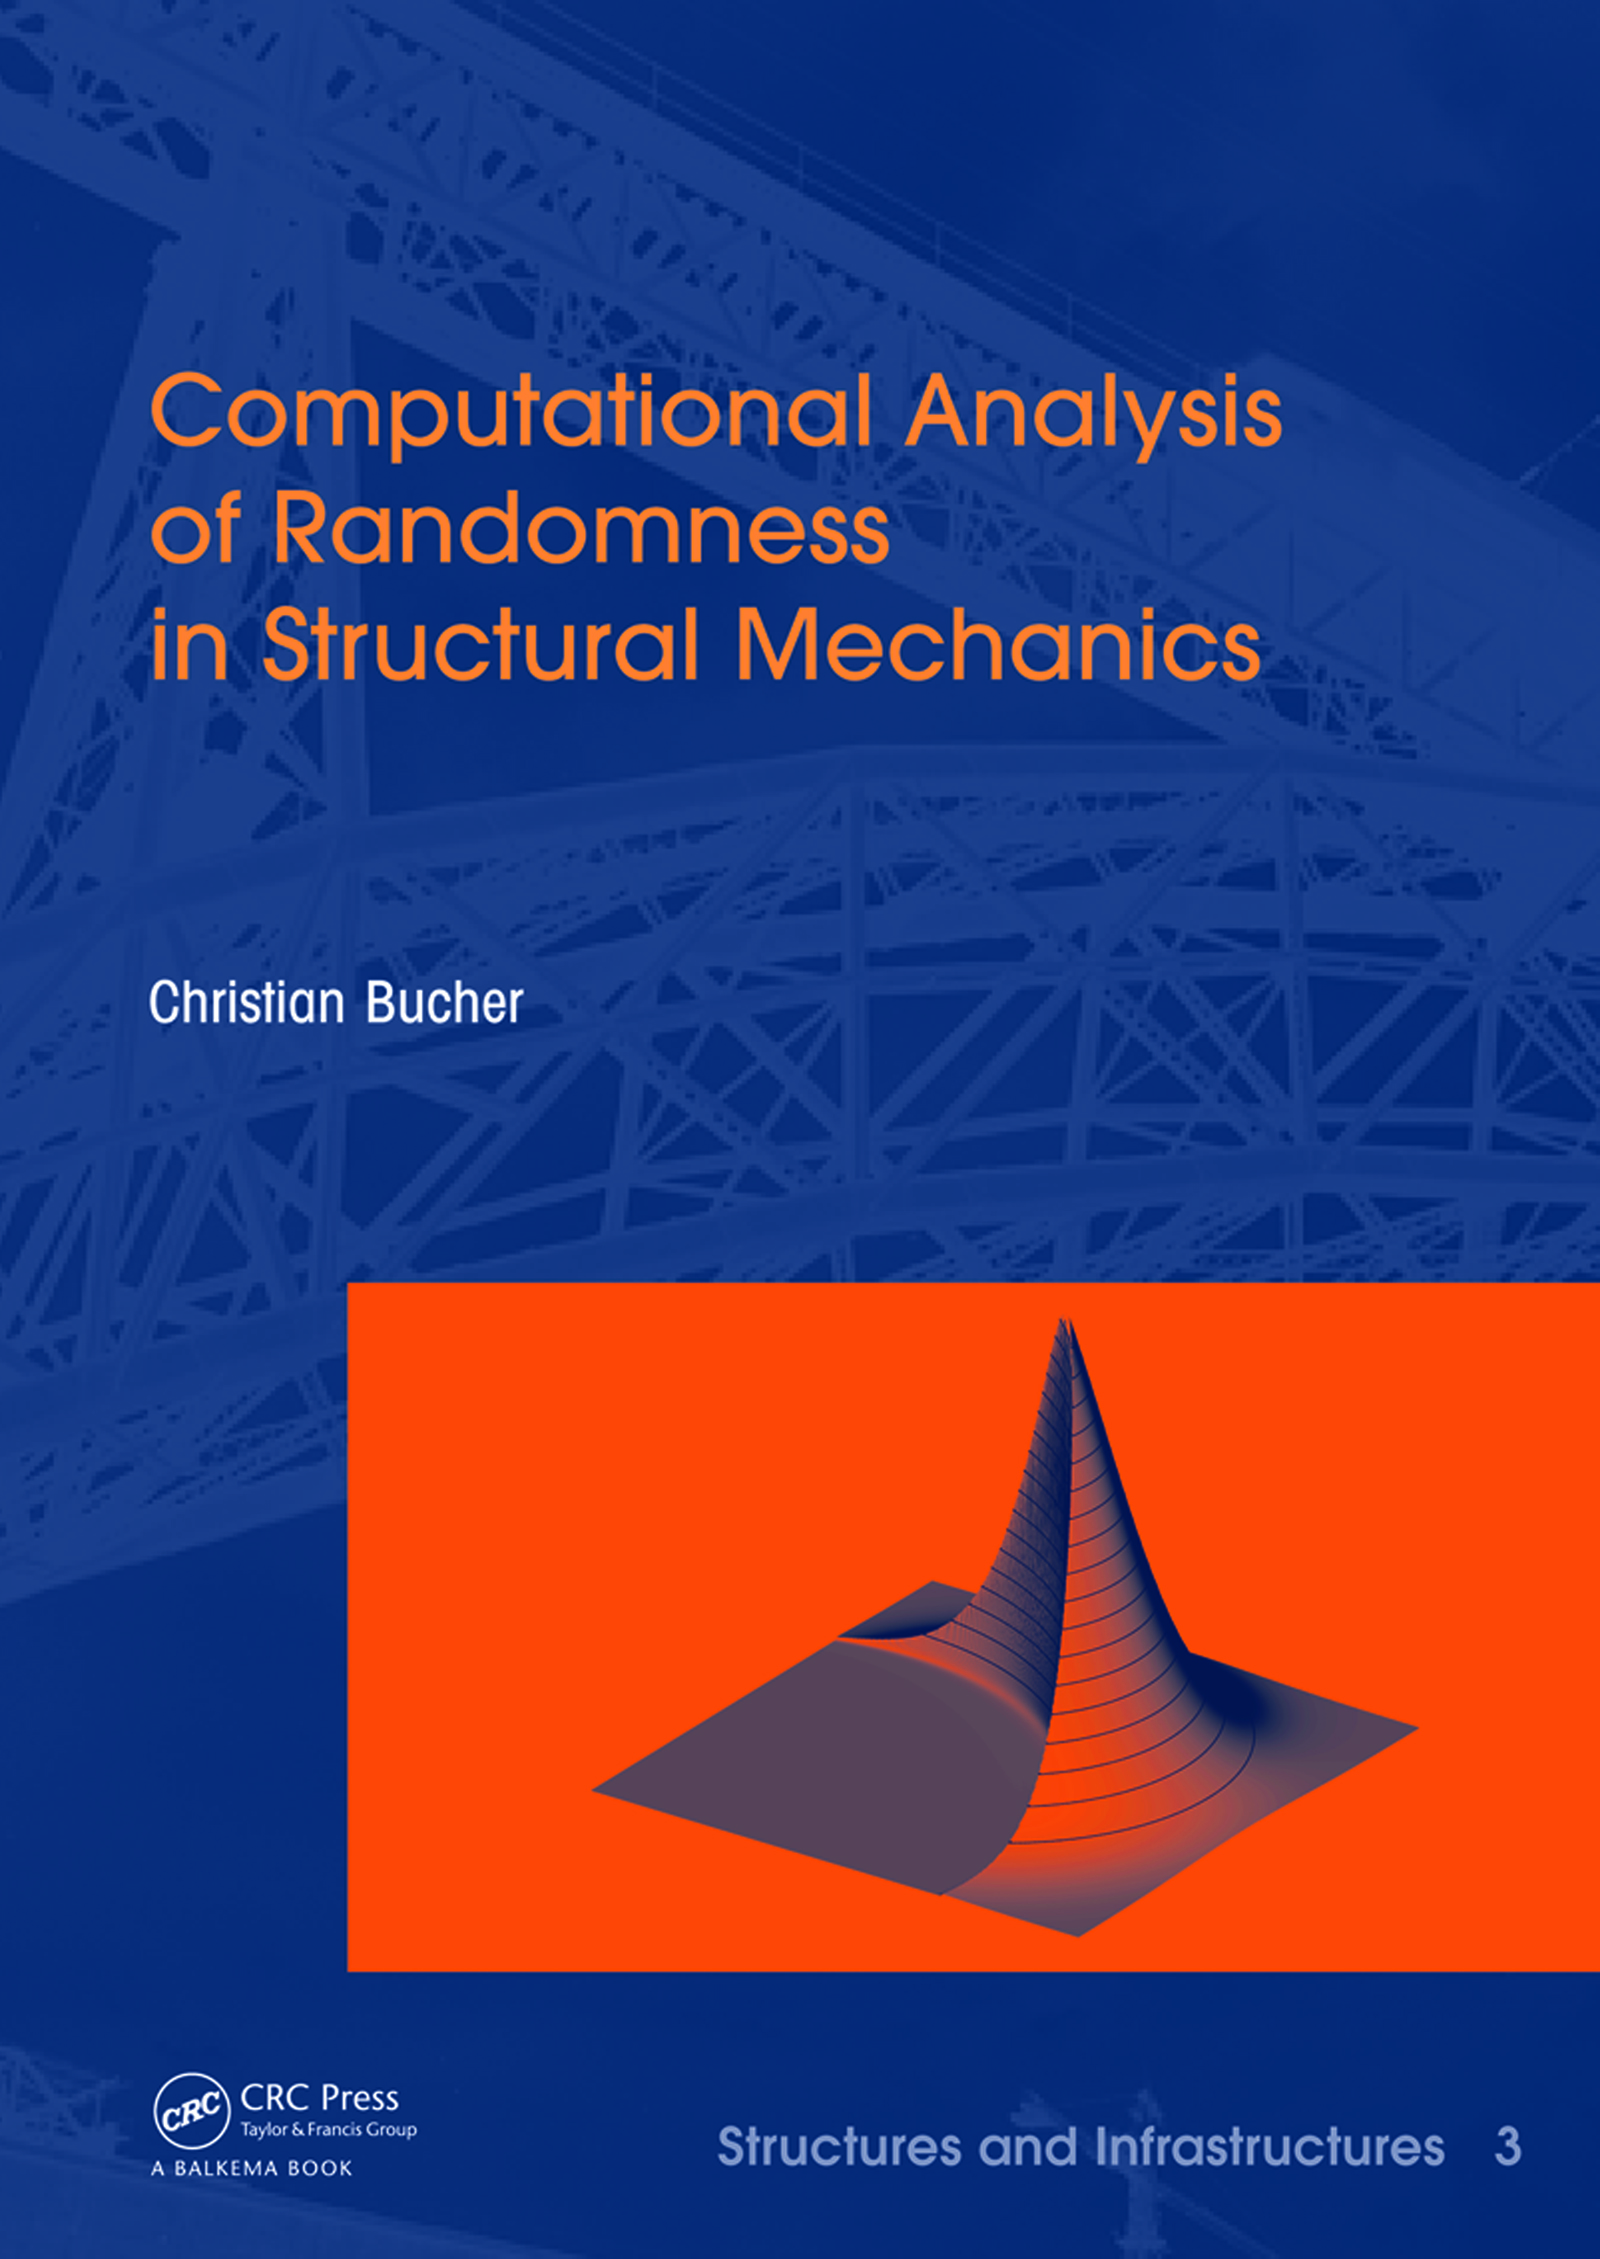 Computational Analysis of Randomness in Structural Mechanics